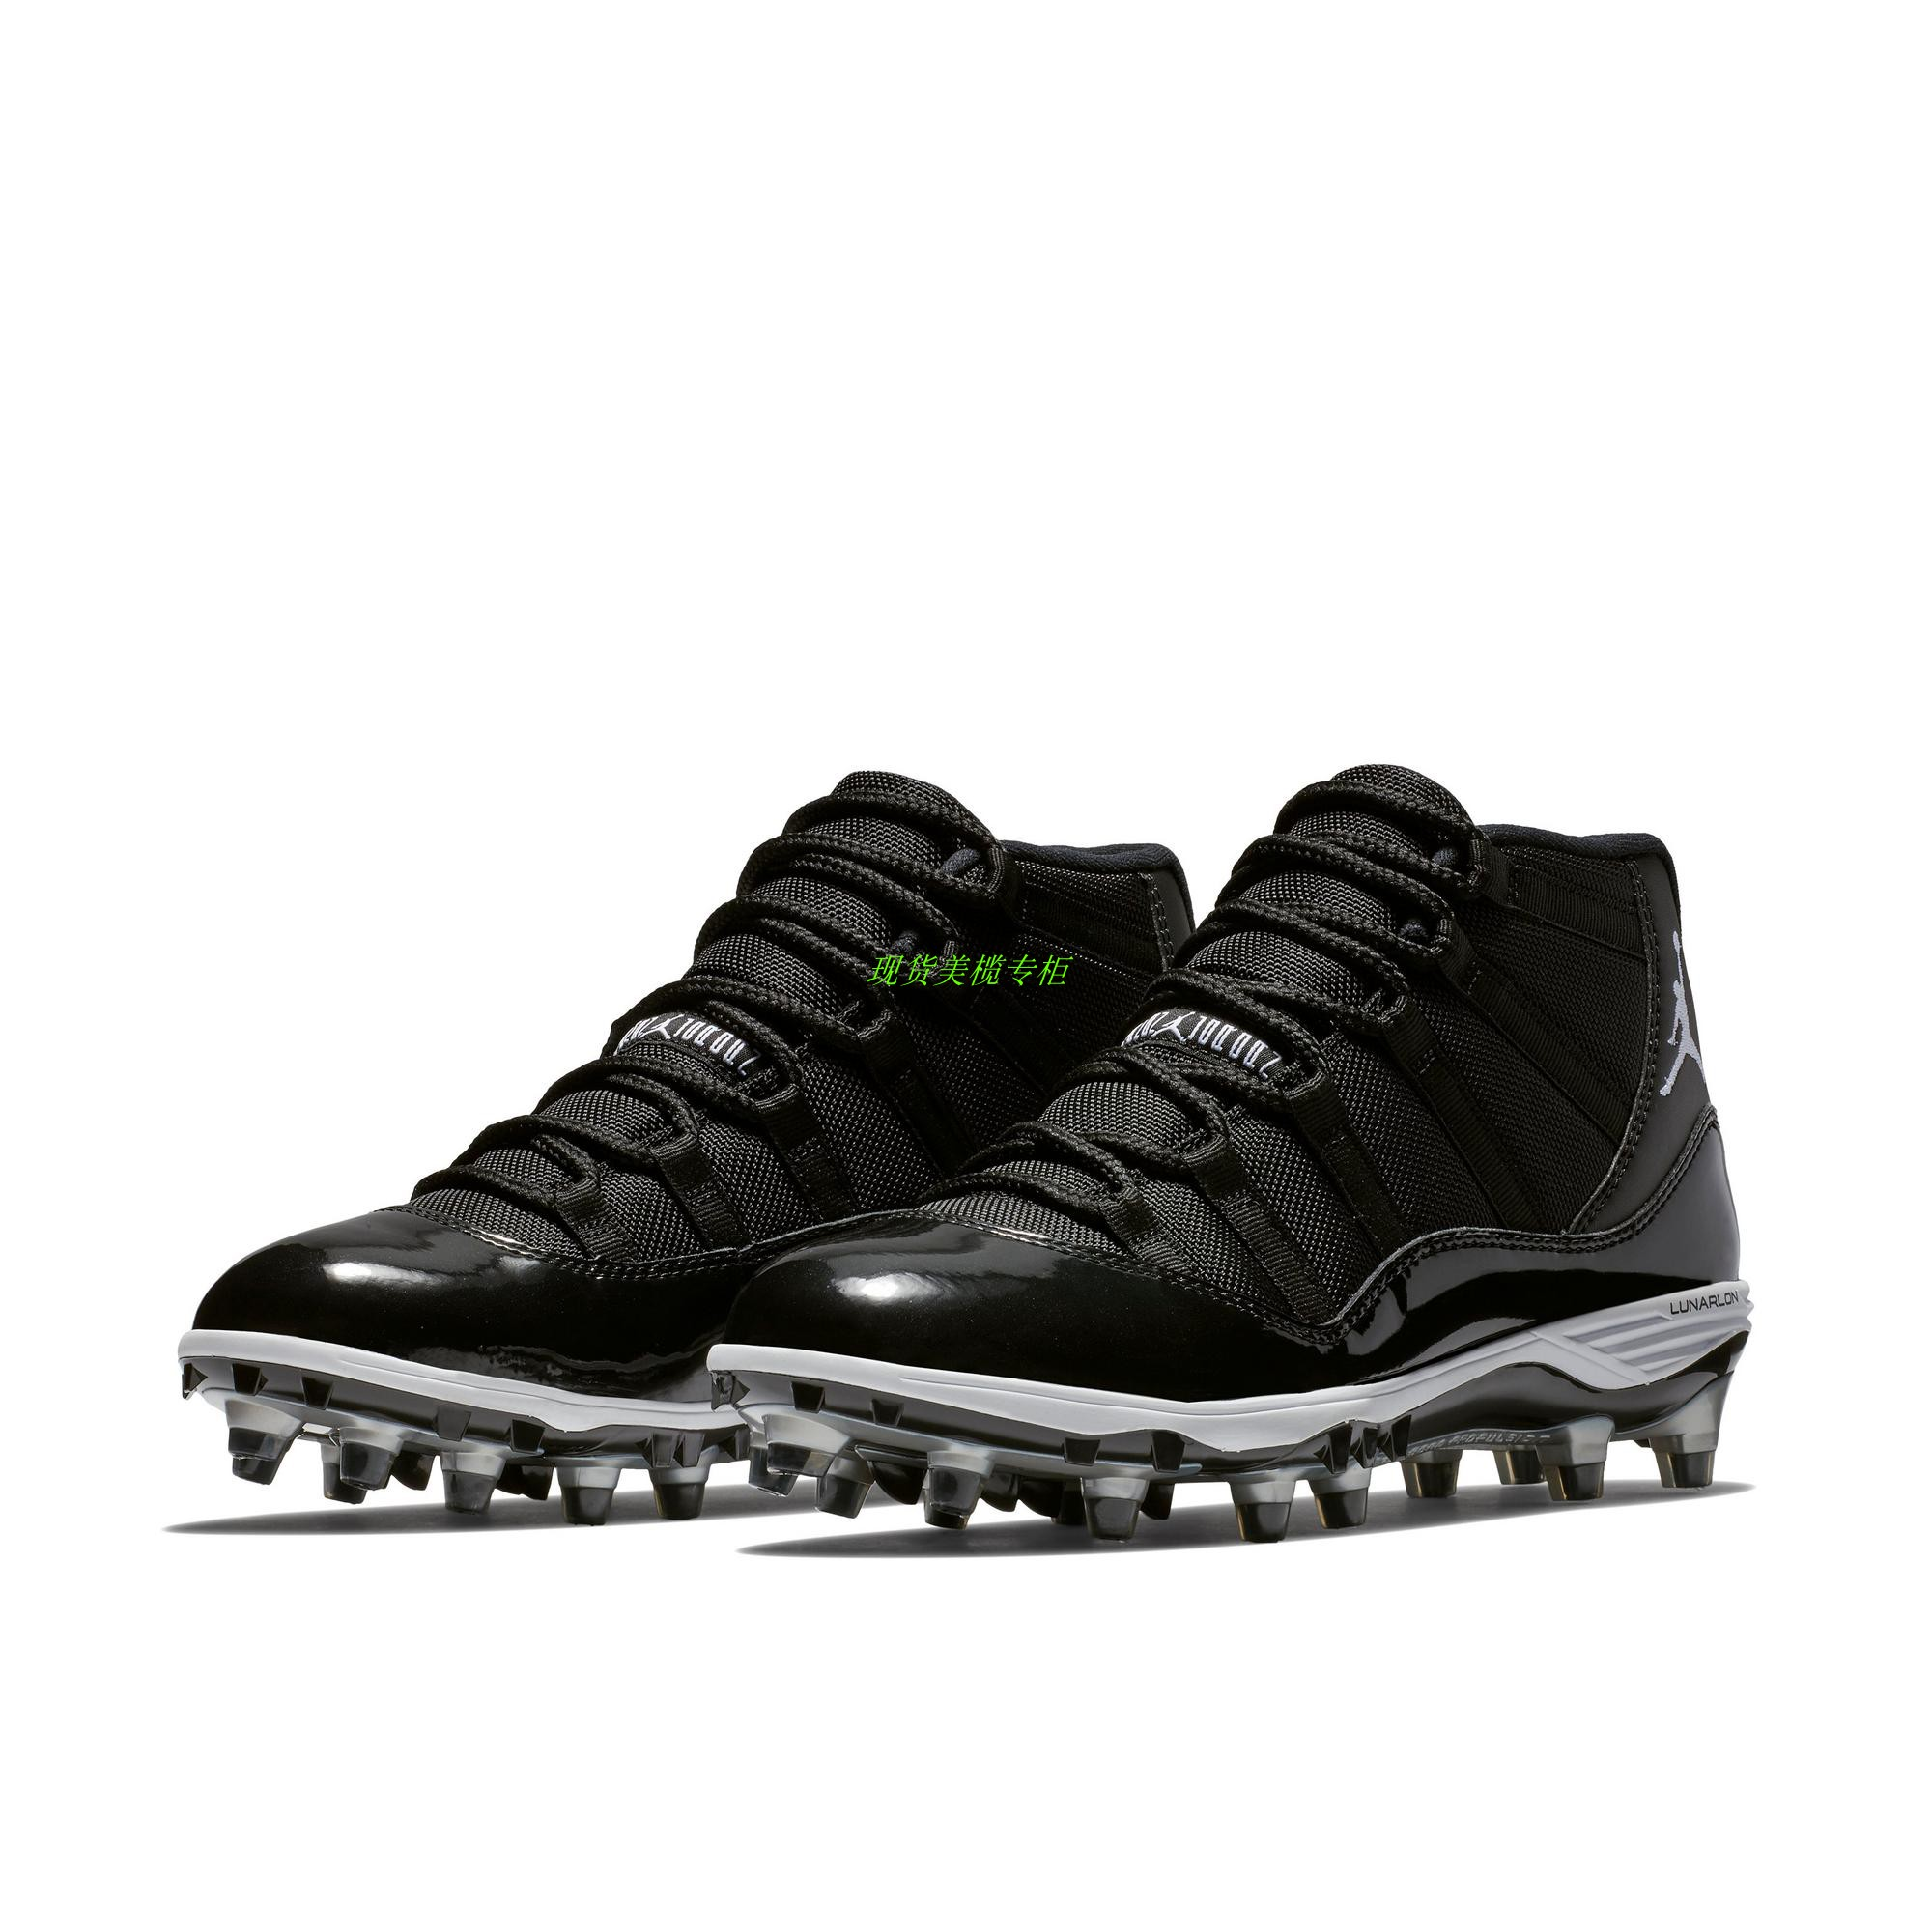 pretty nice d1c96 bb0f0 Authentic with a shoebox]AJ XI Football Cleats Jordan 11 generation  American football shoes NFL class